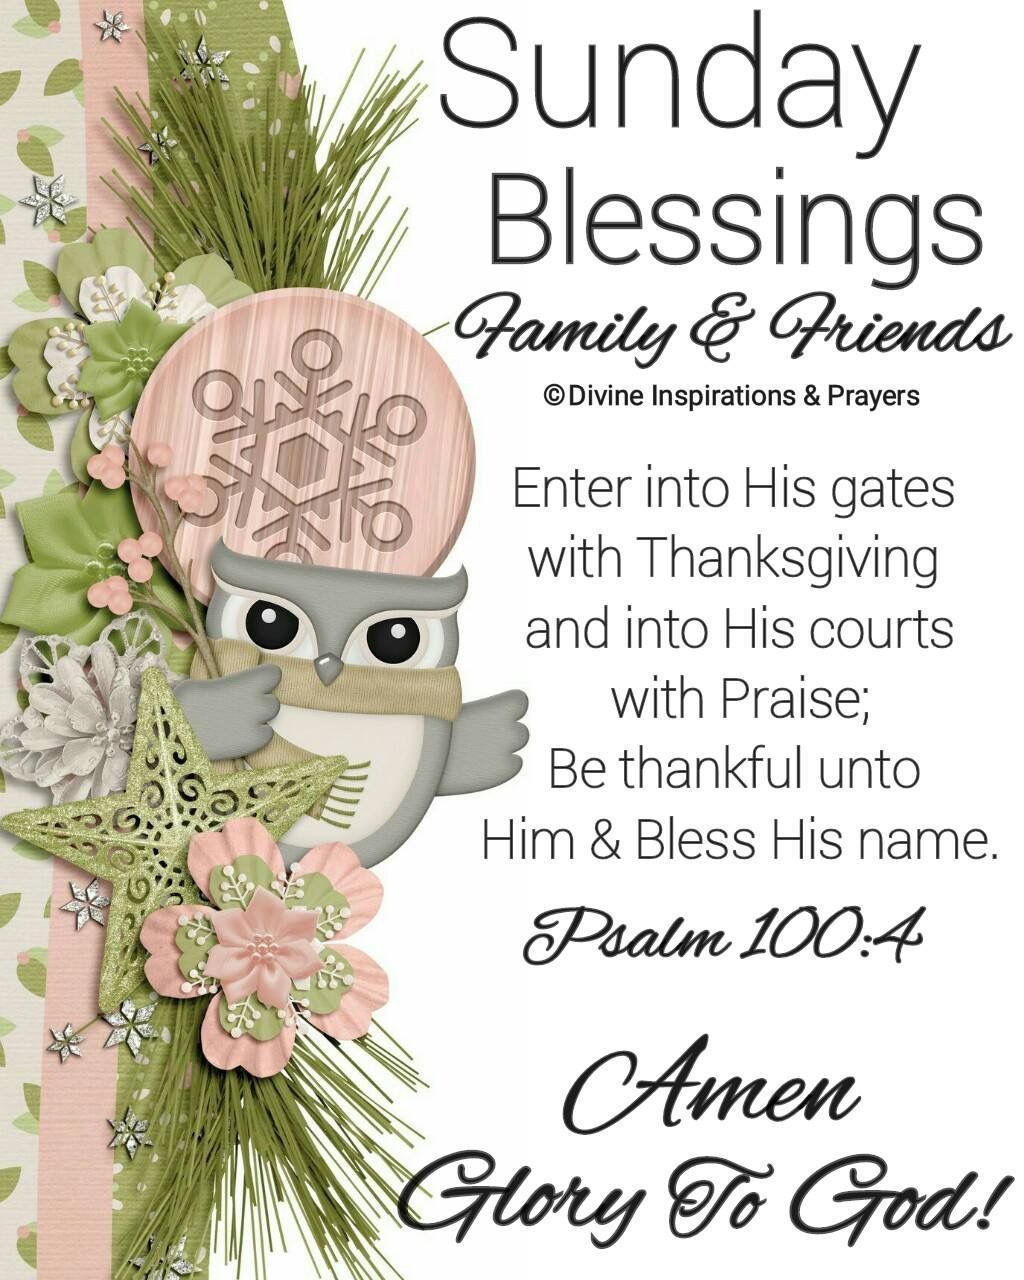 Pin by regina on good sunday morning pinterest blessings good sunday morning sunday greetings beautiful morning facebook photos morning quotes night blessings bible verses blessed kristyandbryce Images